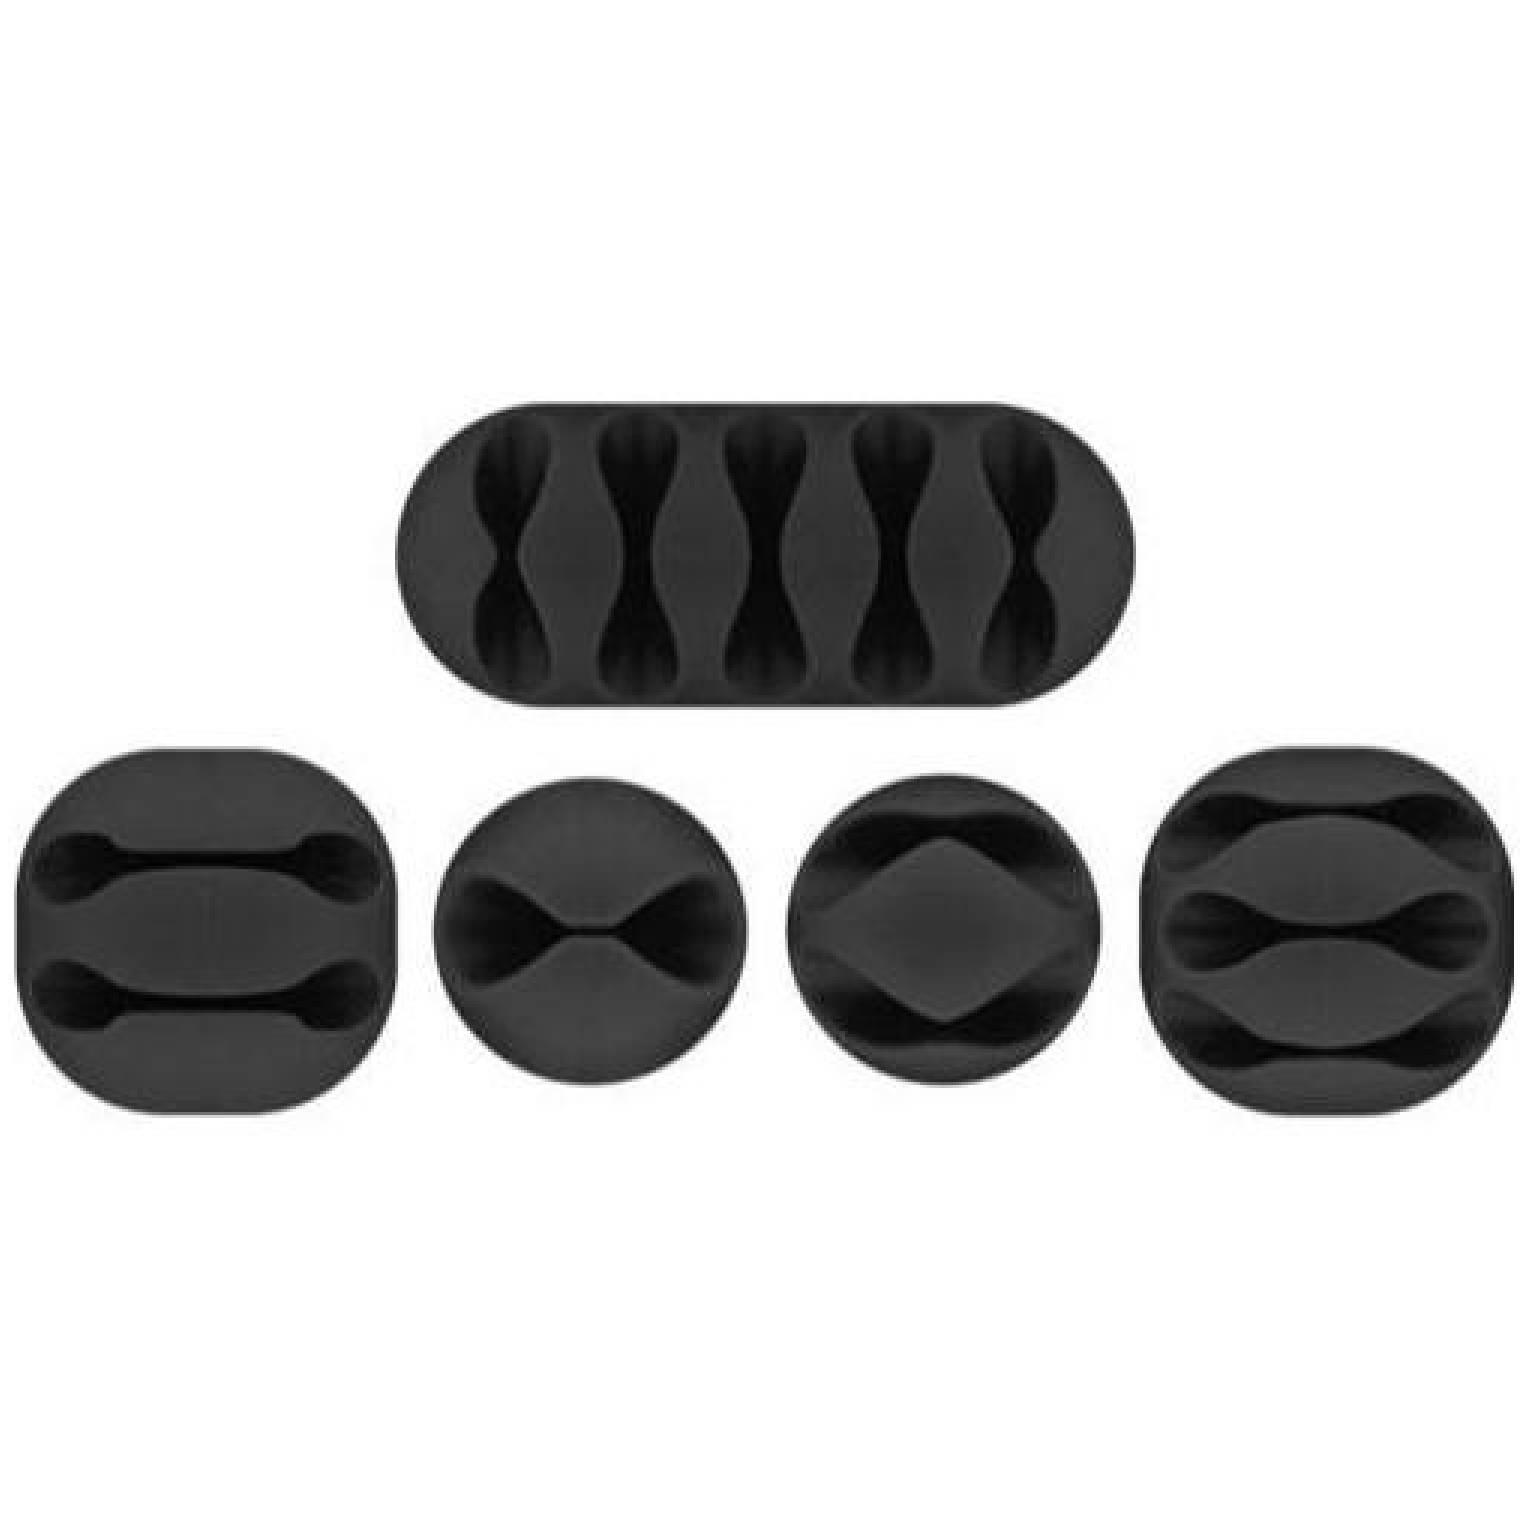 Cable management set, black<br>5-piece set for organising and attaching ca Goobay Cable management set, black, black, Sandwich-blister - 5-piece set for organising and attaching cablesset consists of: 1x one-slot clips, 2x two-slot clips, 1x three-slot clips, 1x five-slot clipsorganise your cables in the office or at homedurable, long-lasting 3M adhesive surface